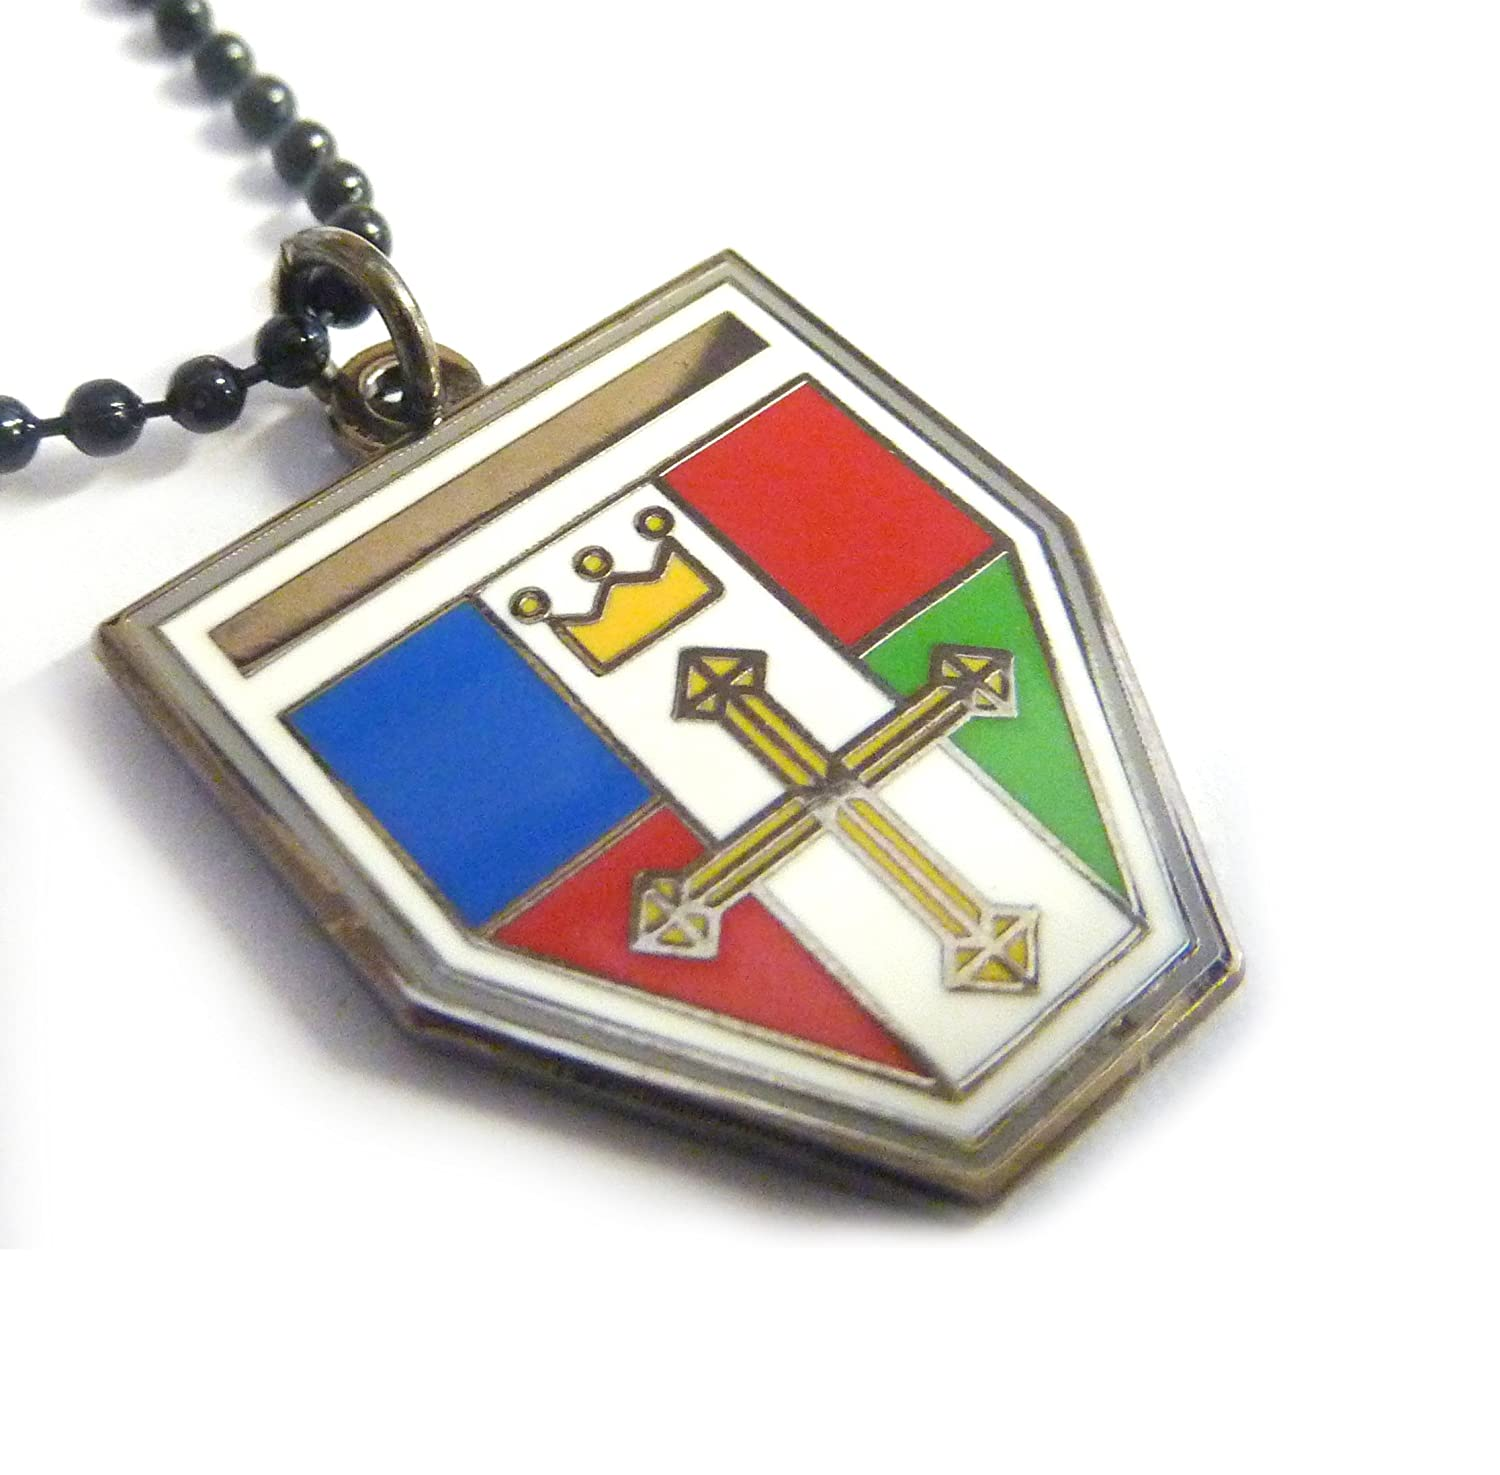 Amazon voltron defender of the universe crest mini shield amazon voltron defender of the universe crest mini shield necklace pendant w ball chain everything else biocorpaavc